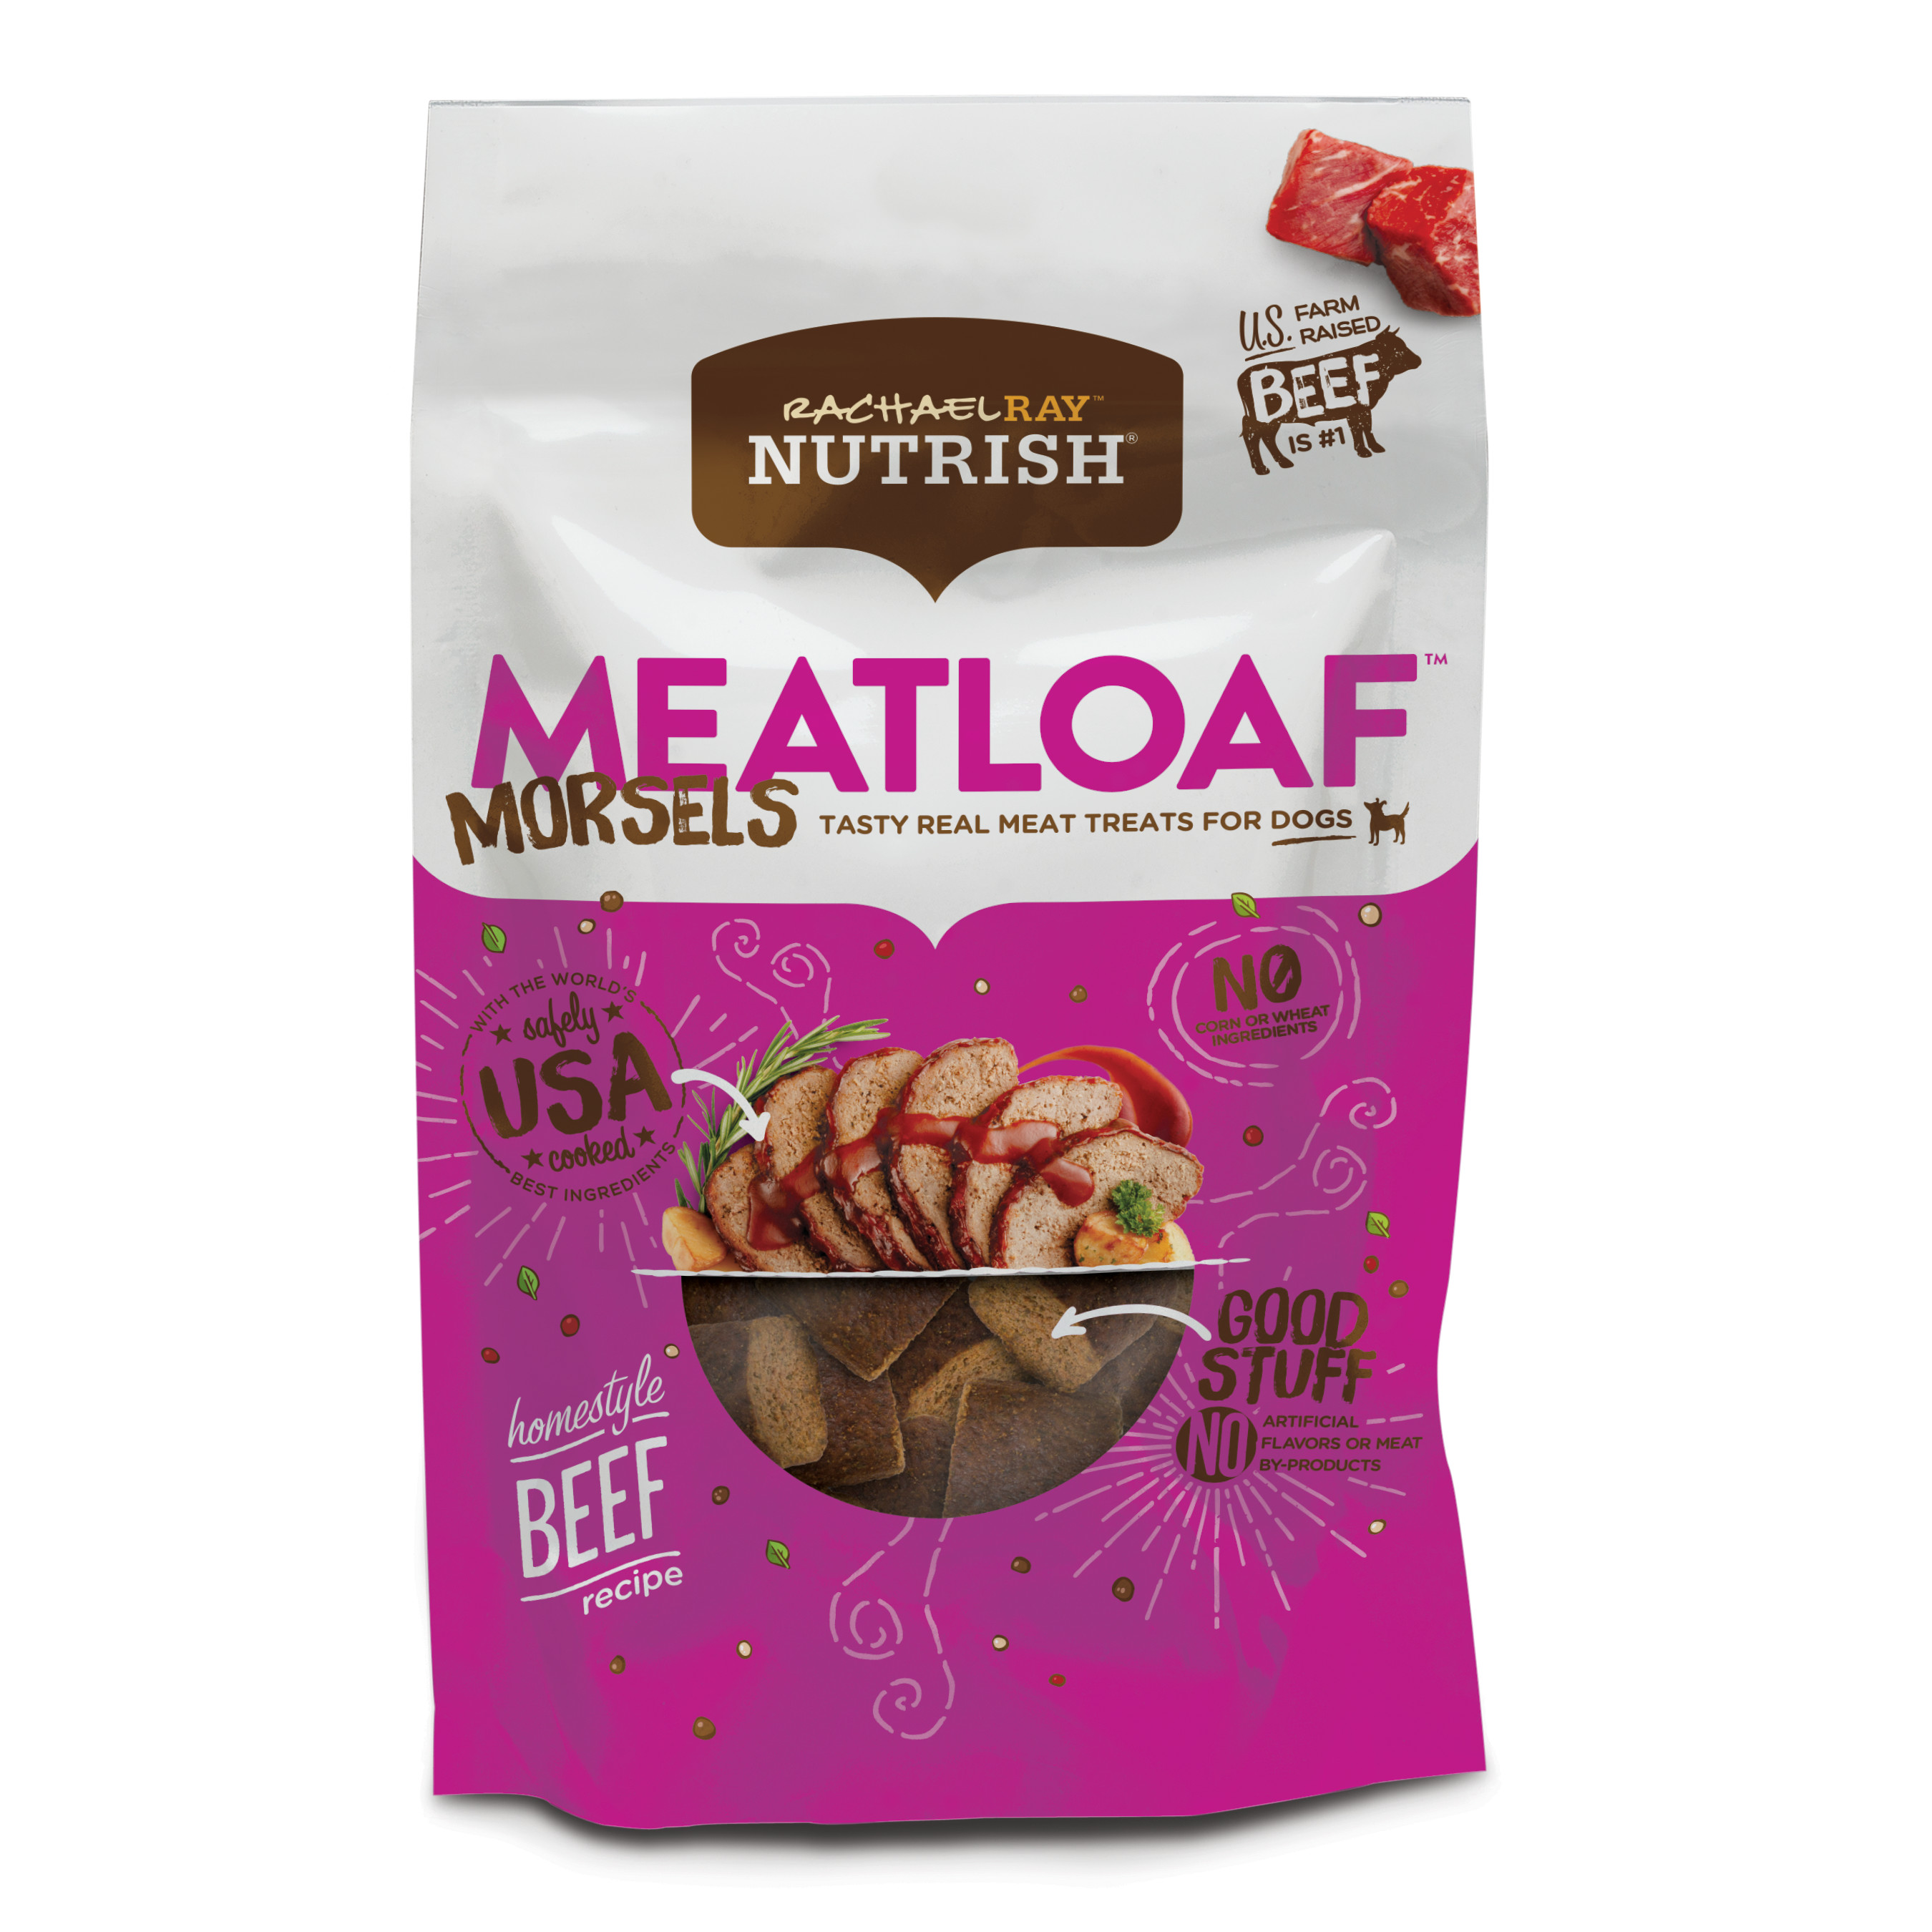 Rachael Ray Nutrish Meatloaf Morsels Dog Treats, Homestyle Beef Recipe, 12 oz